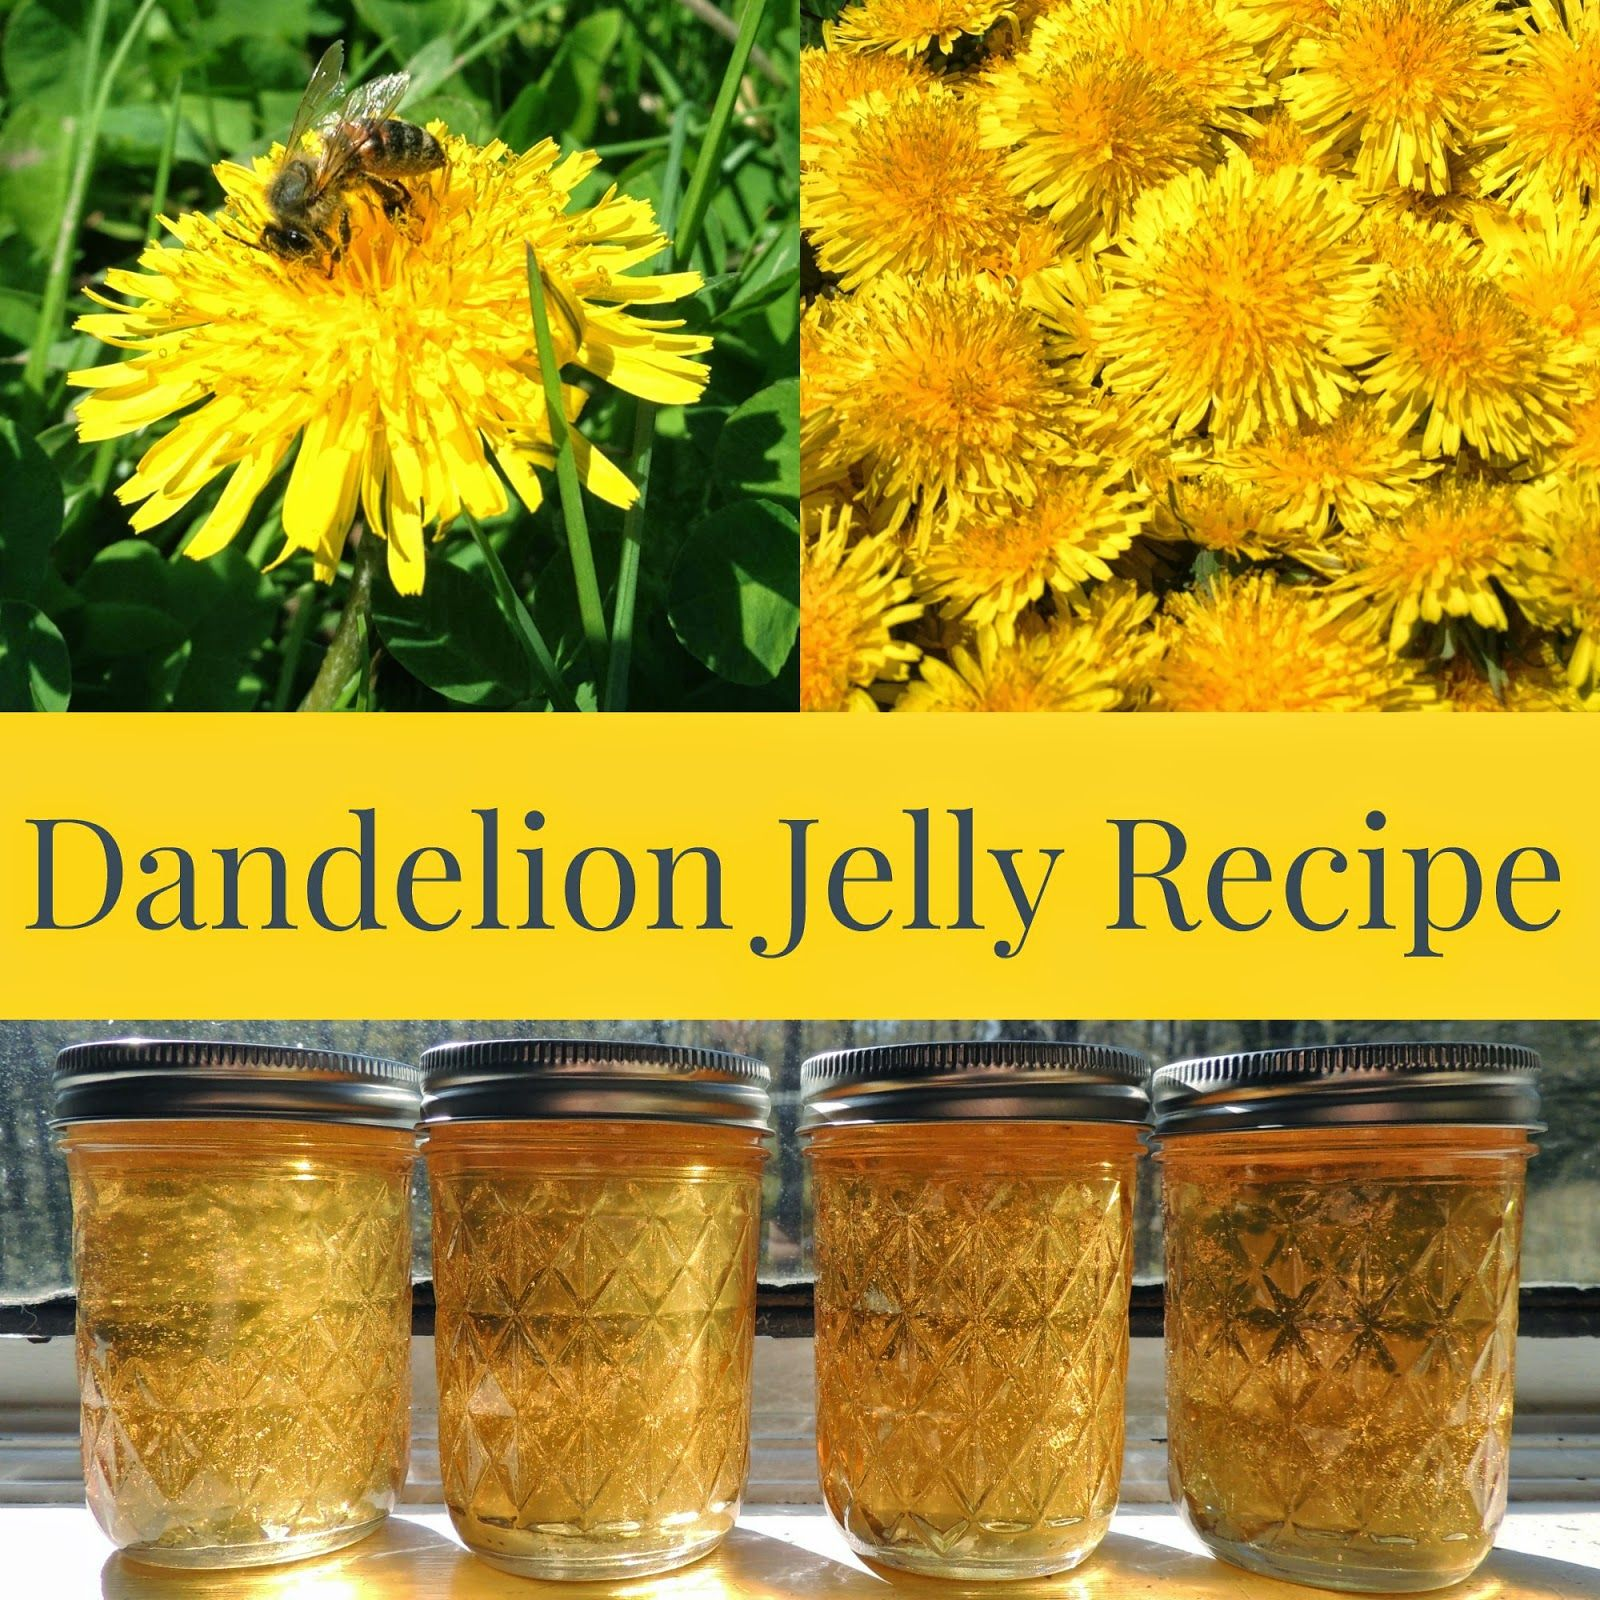 Dandelion Jelly Recipe With Images Jelly Recipes Dandelion Jelly Dandelion Recipes